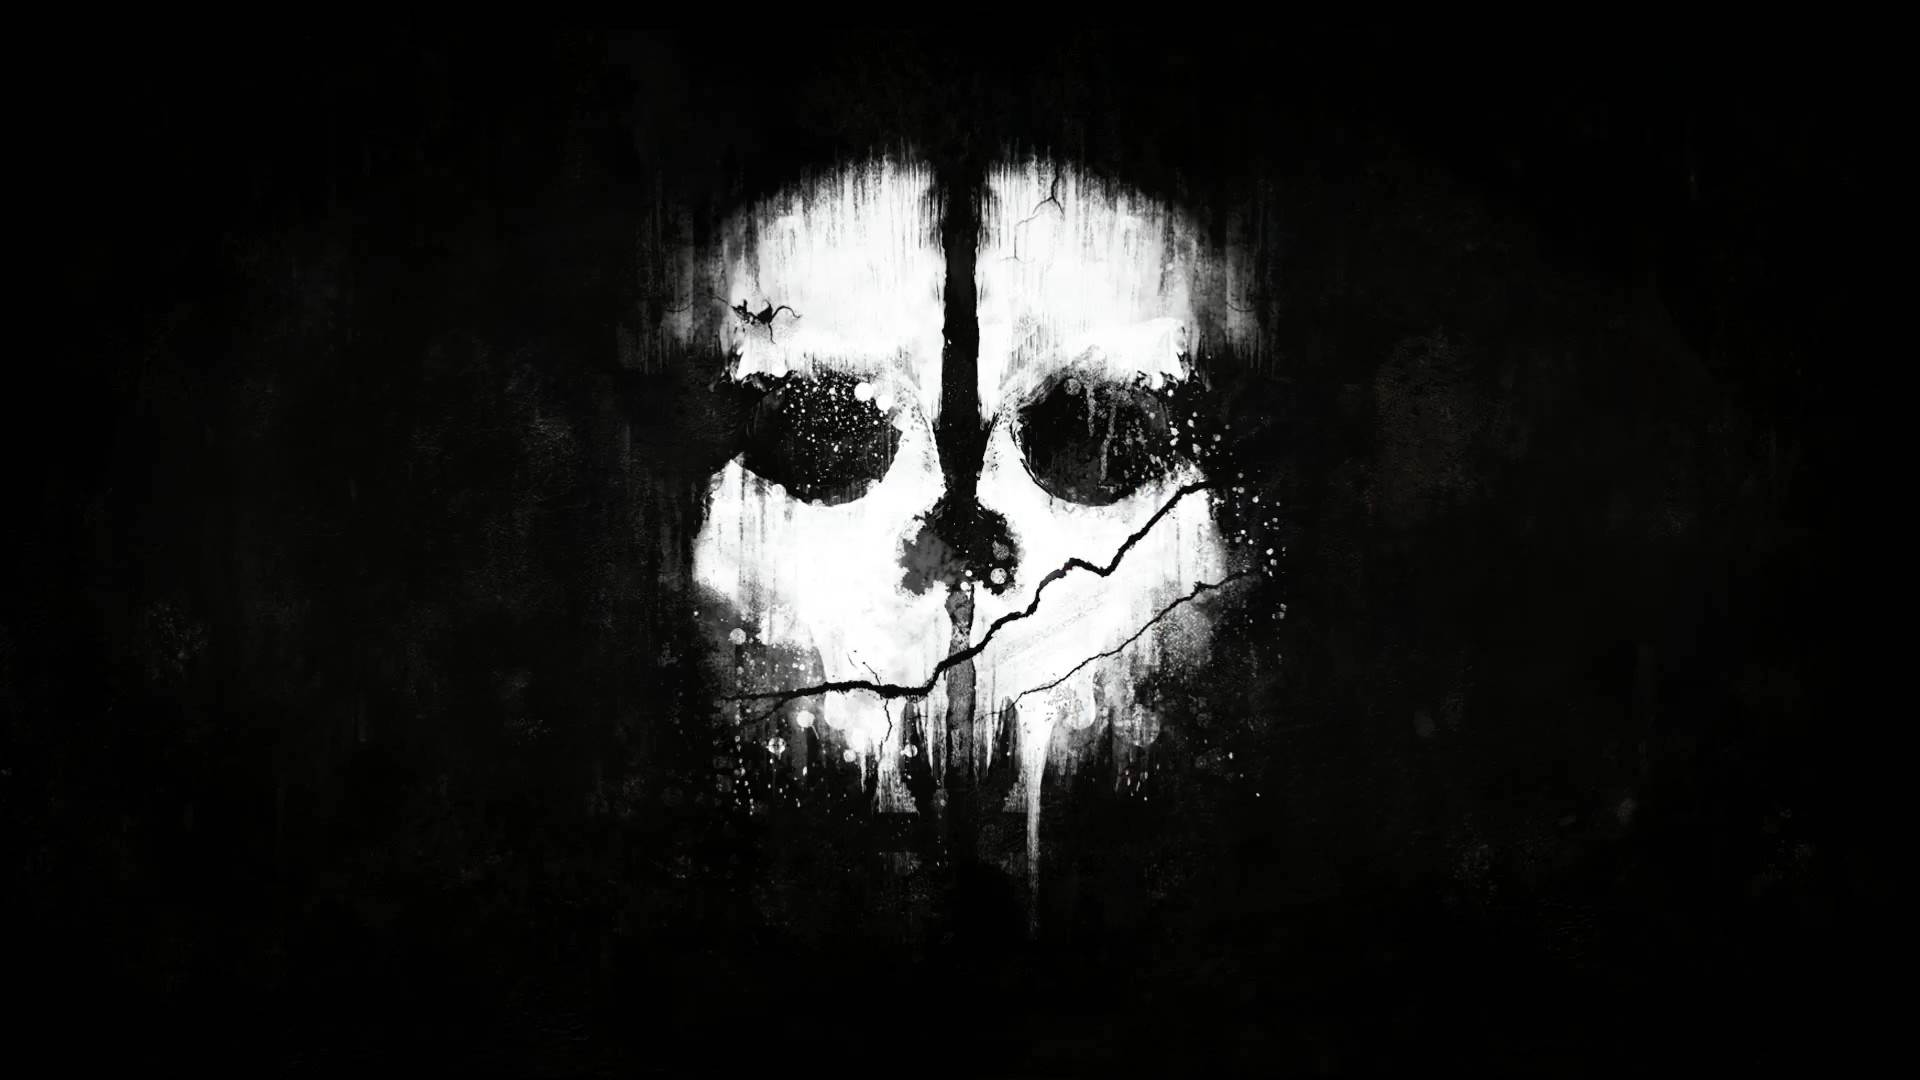 wallpaper 1080pCall Of Duty Ghost 1080p Wallpaper Cool Games Wallpaper 1920x1080